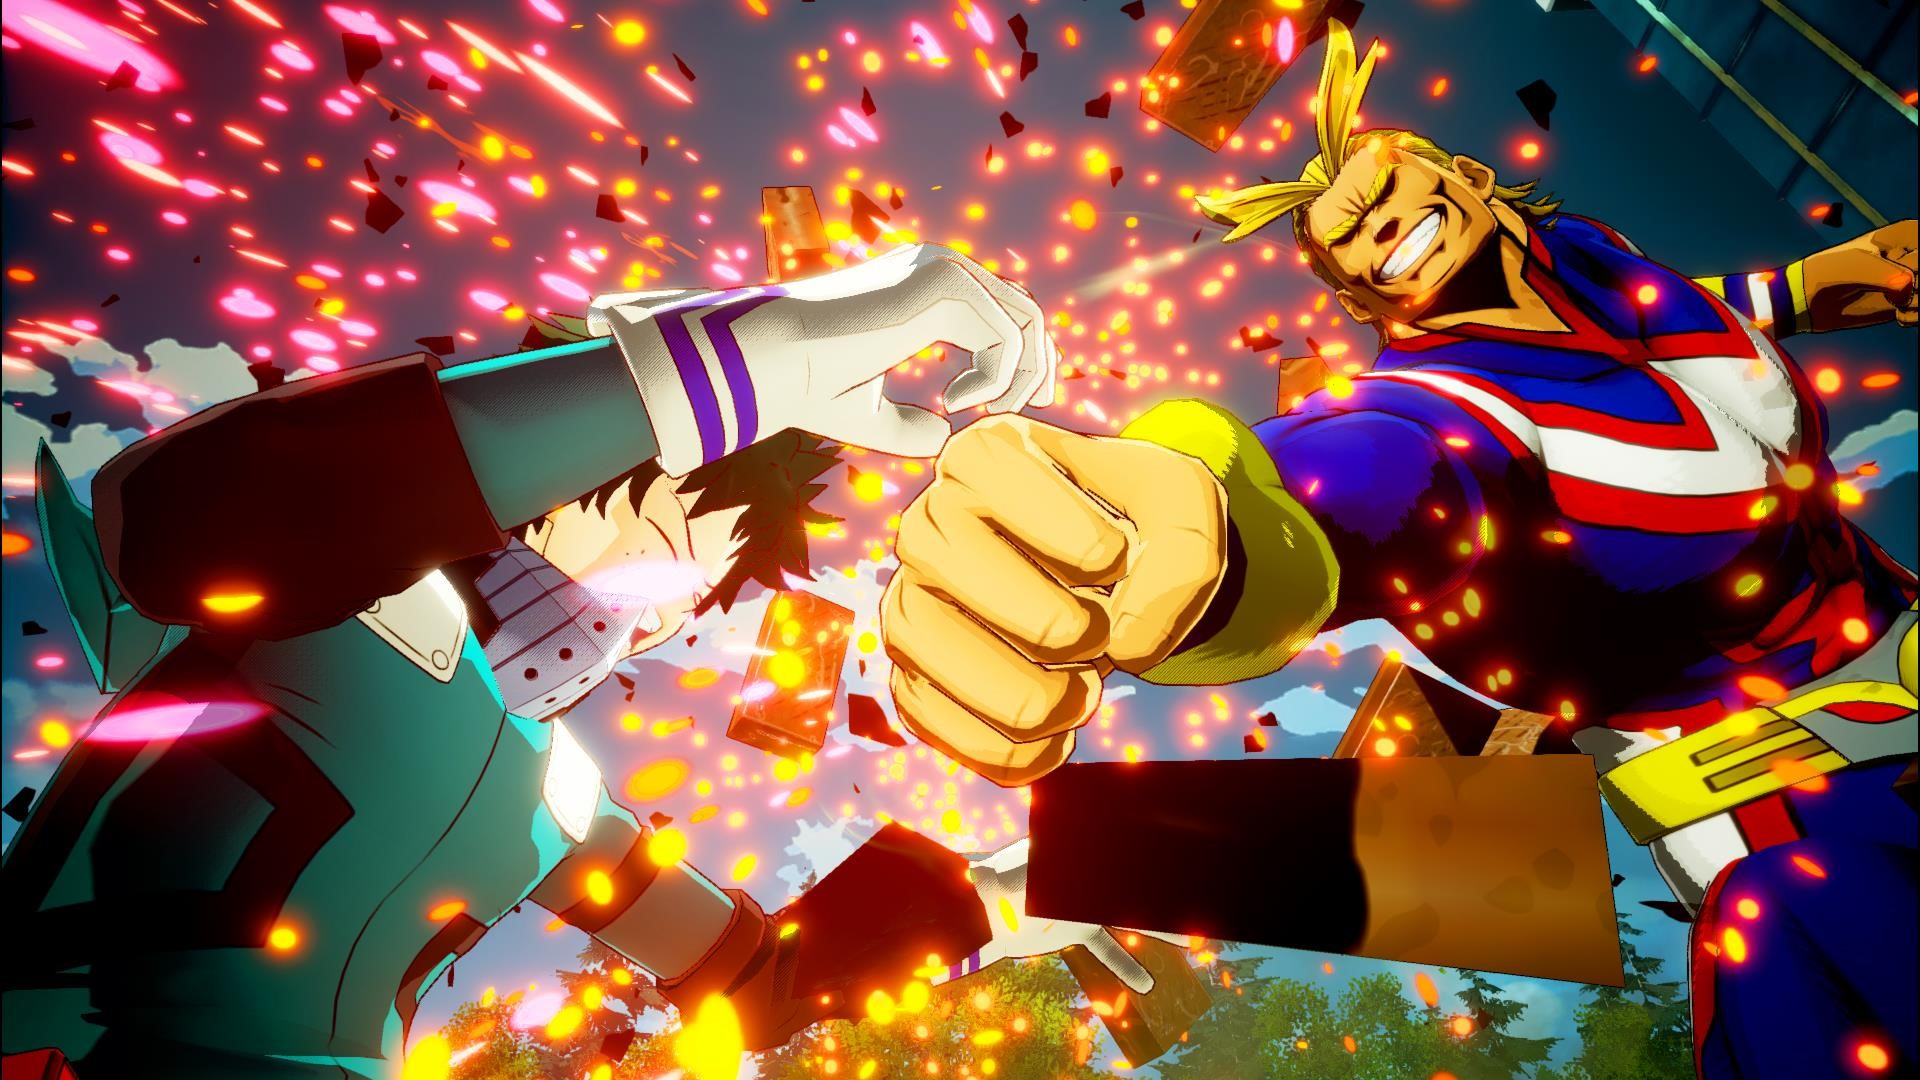 My Hero Academia One S Justice Screenshots Show All Might